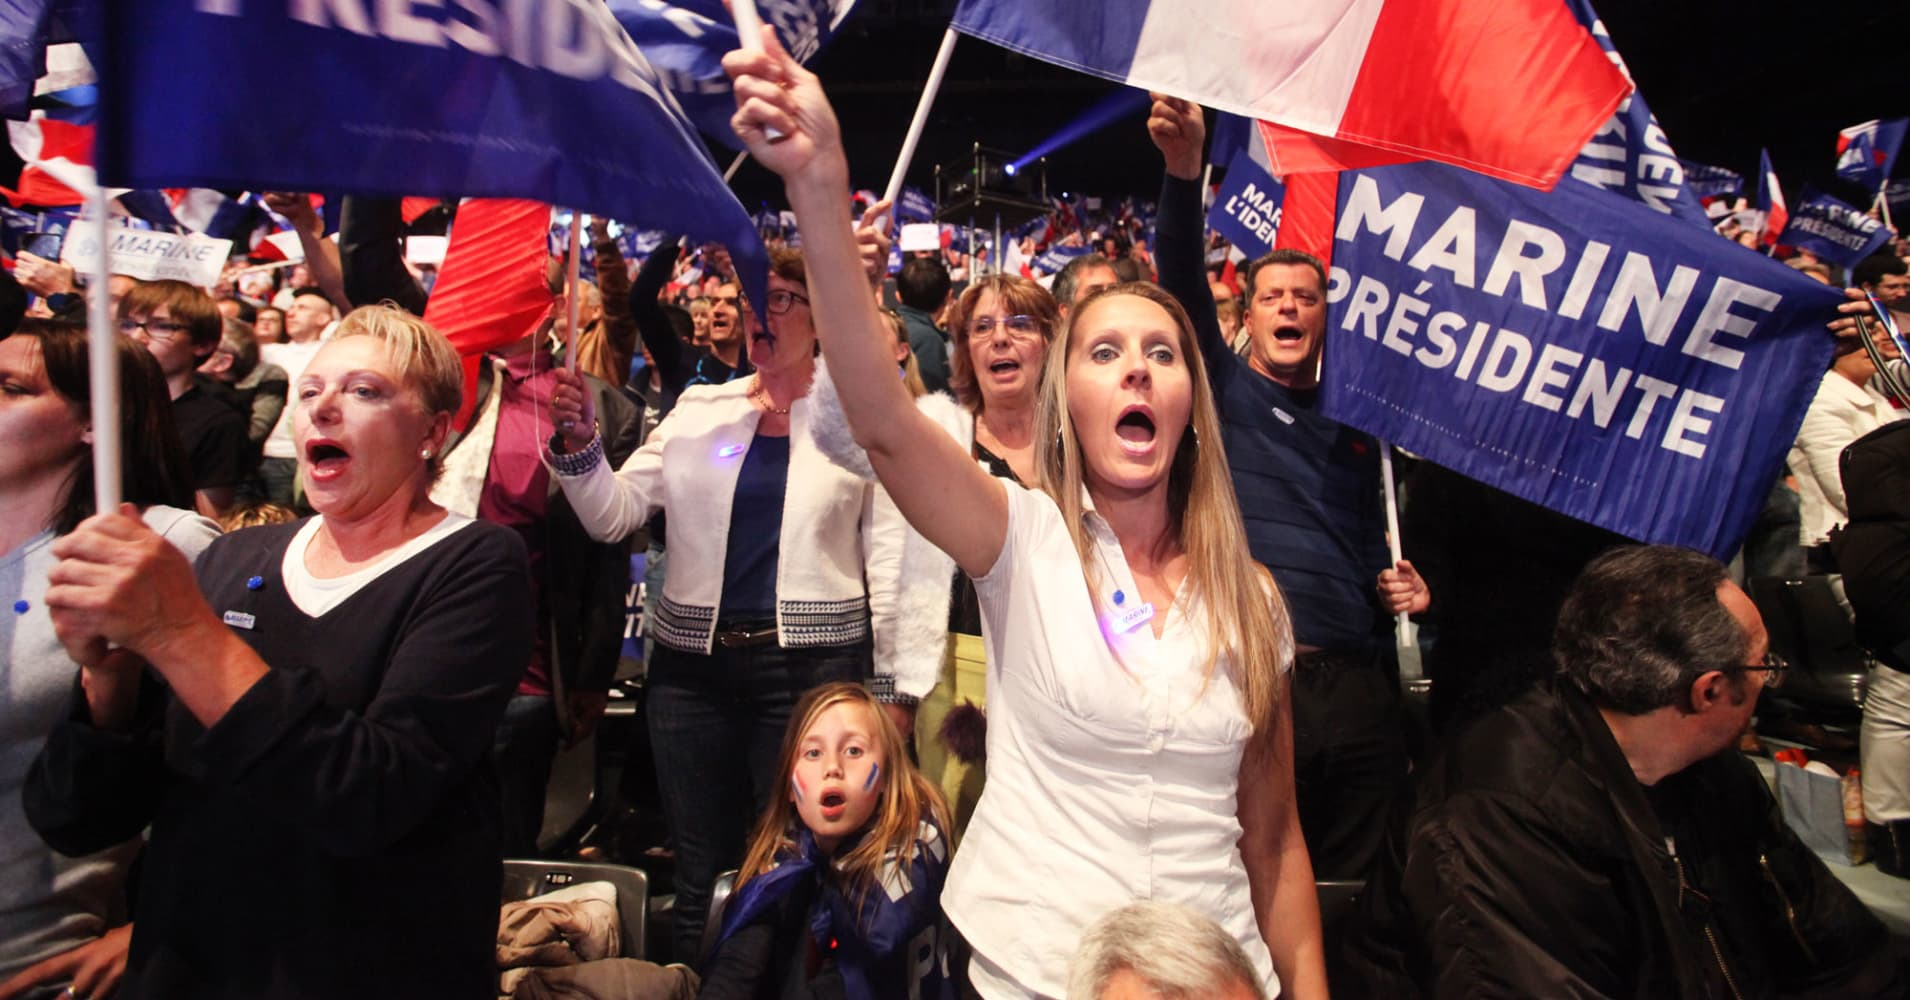 French election may trigger volatile reaction that impacts global markets for weeks